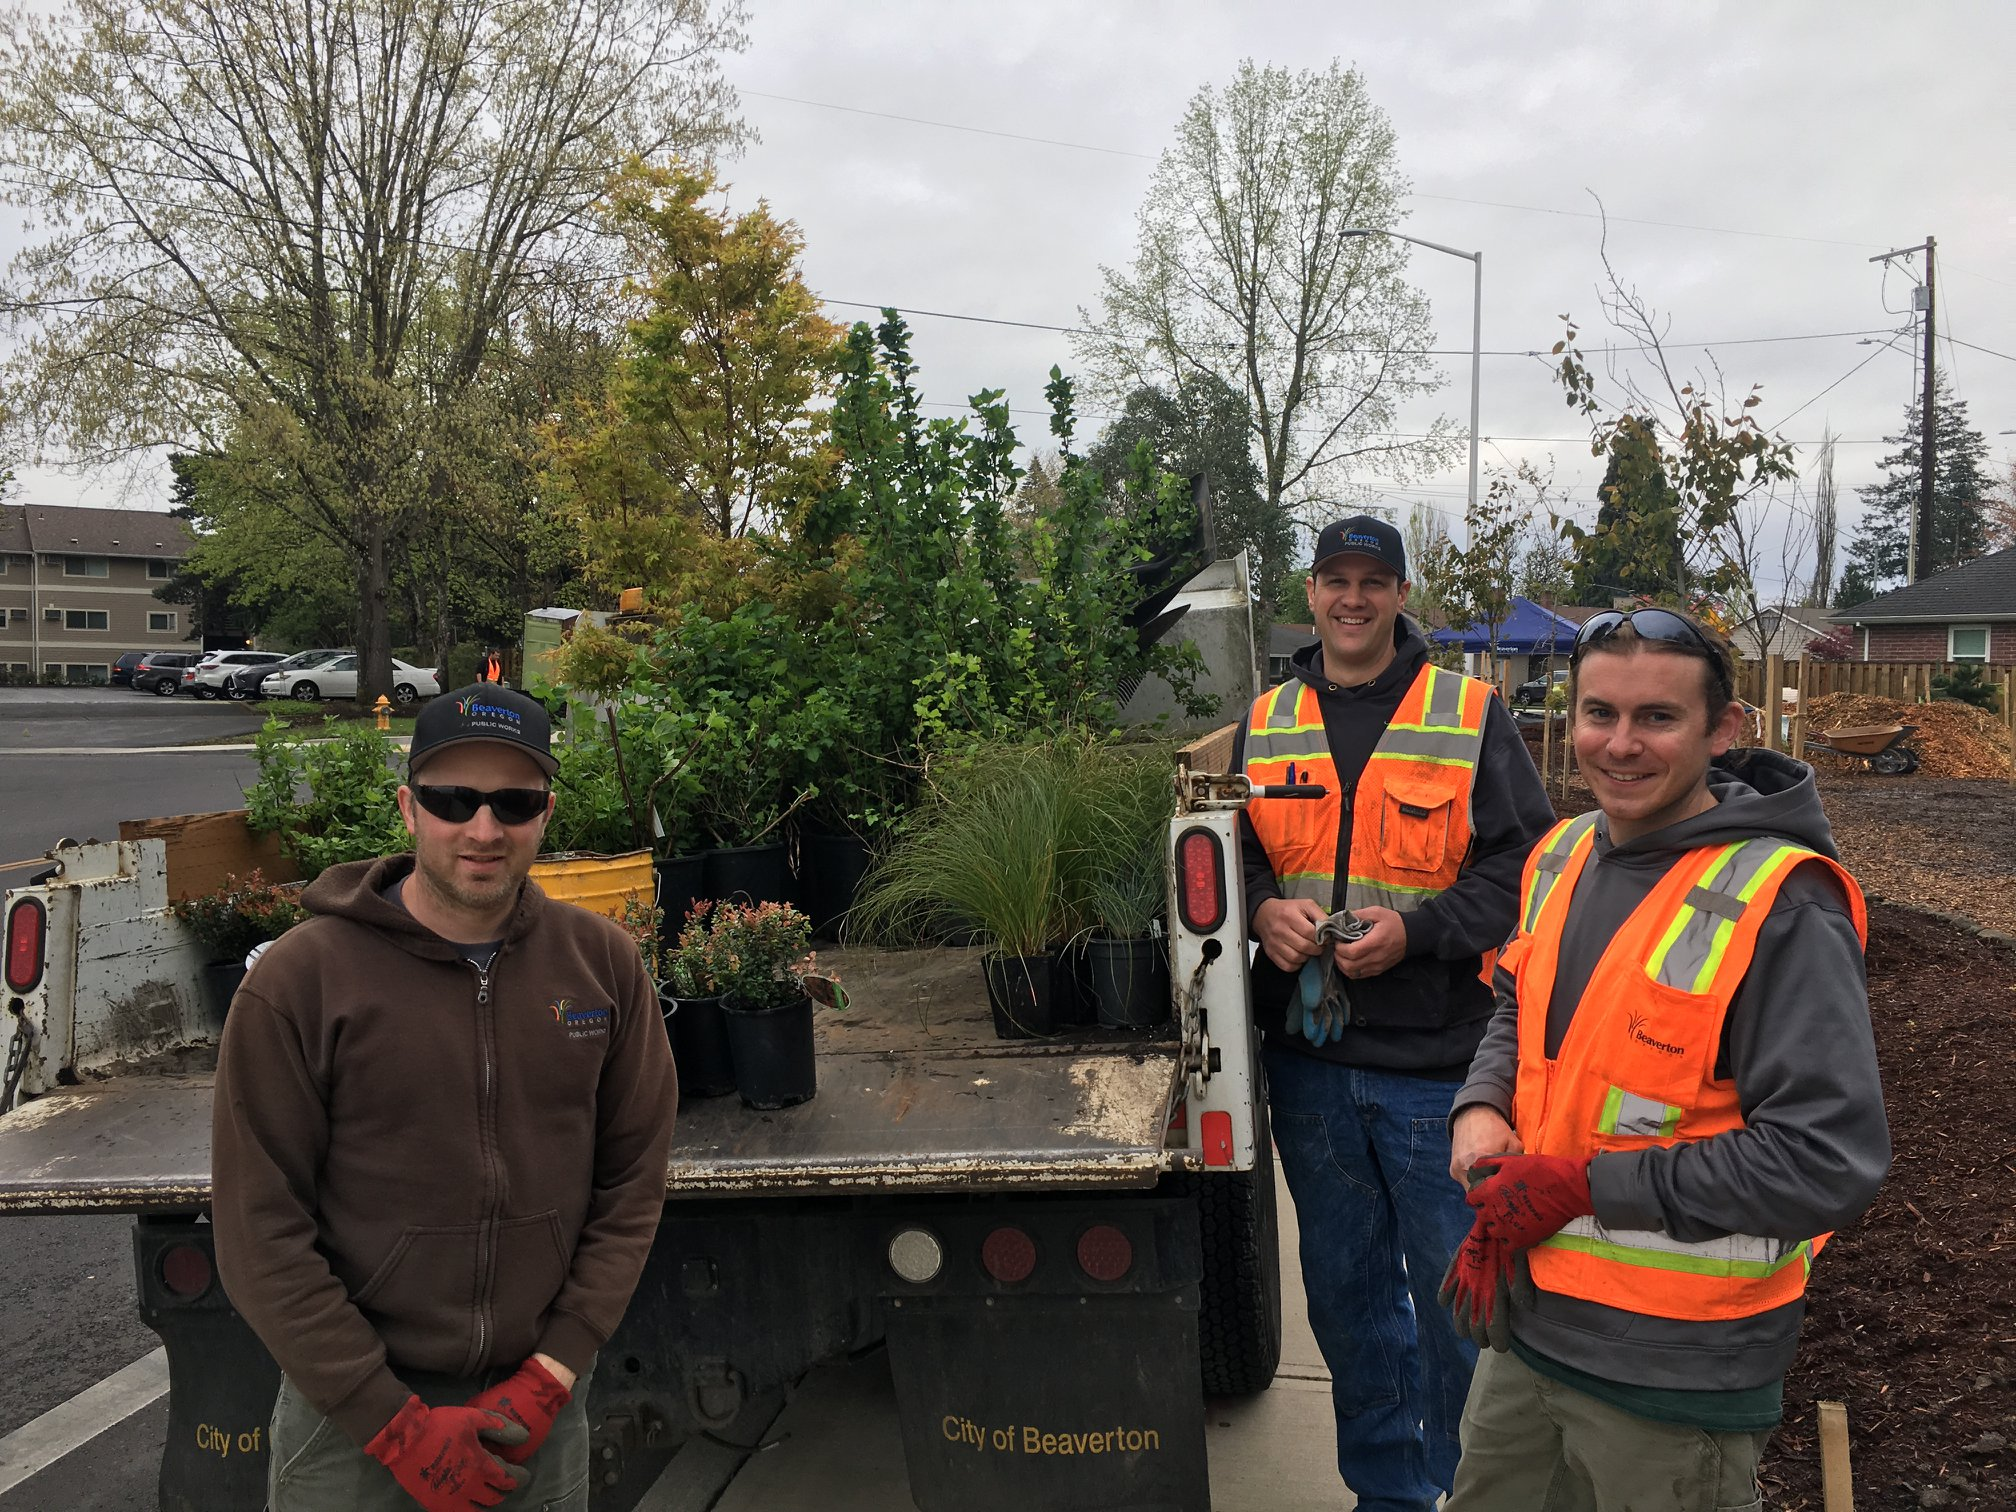 City of Beaverton volunteers at the 2019 SOLVE It for Earth Day.